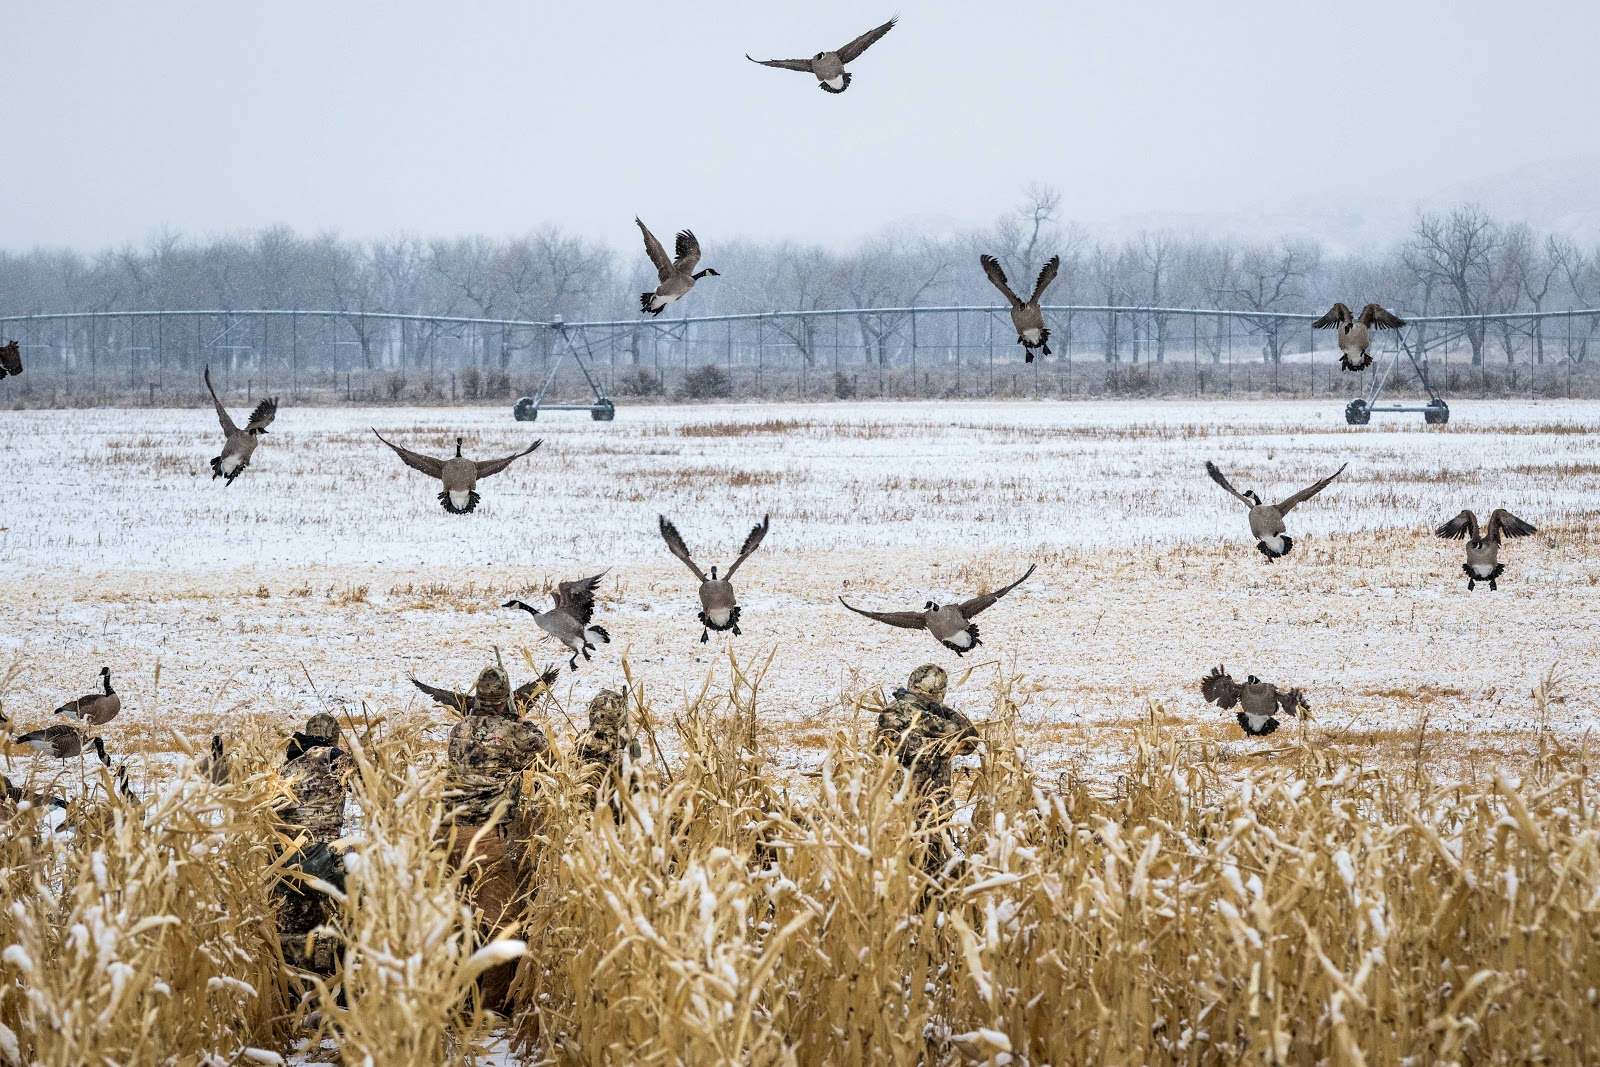 Geese feet down in the decoys in the snow.